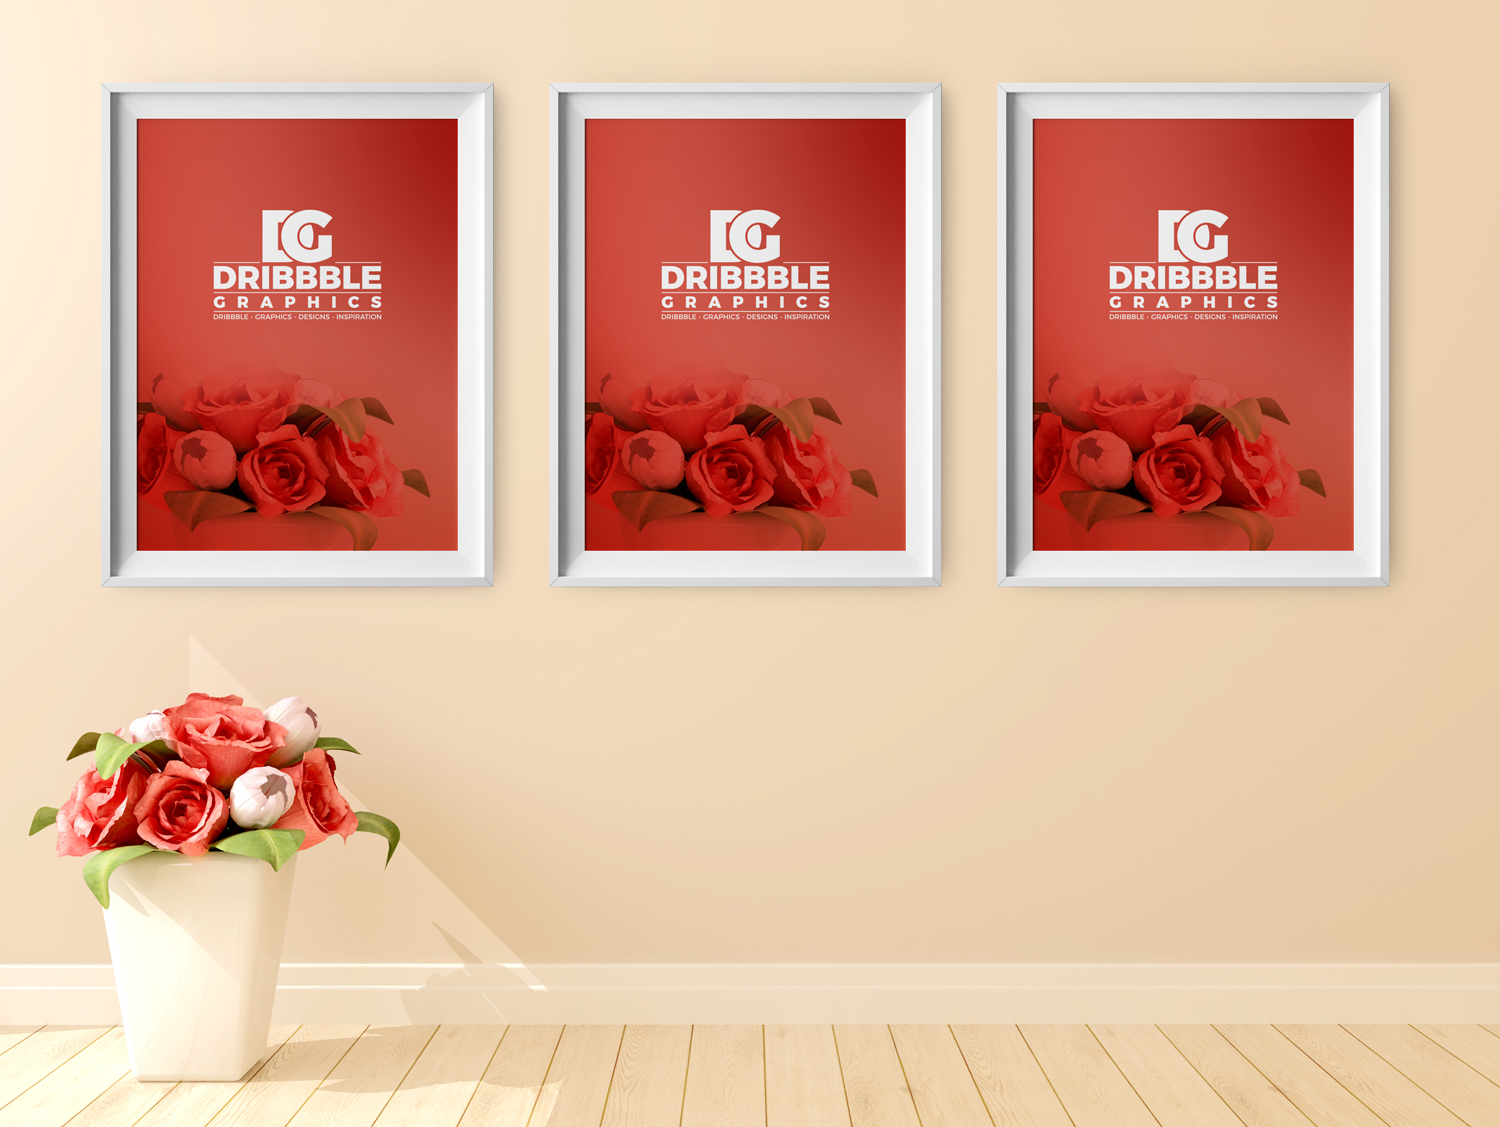 Free-Poster-Frame-Mockup-with-Beautiful-Flowers-on-Background